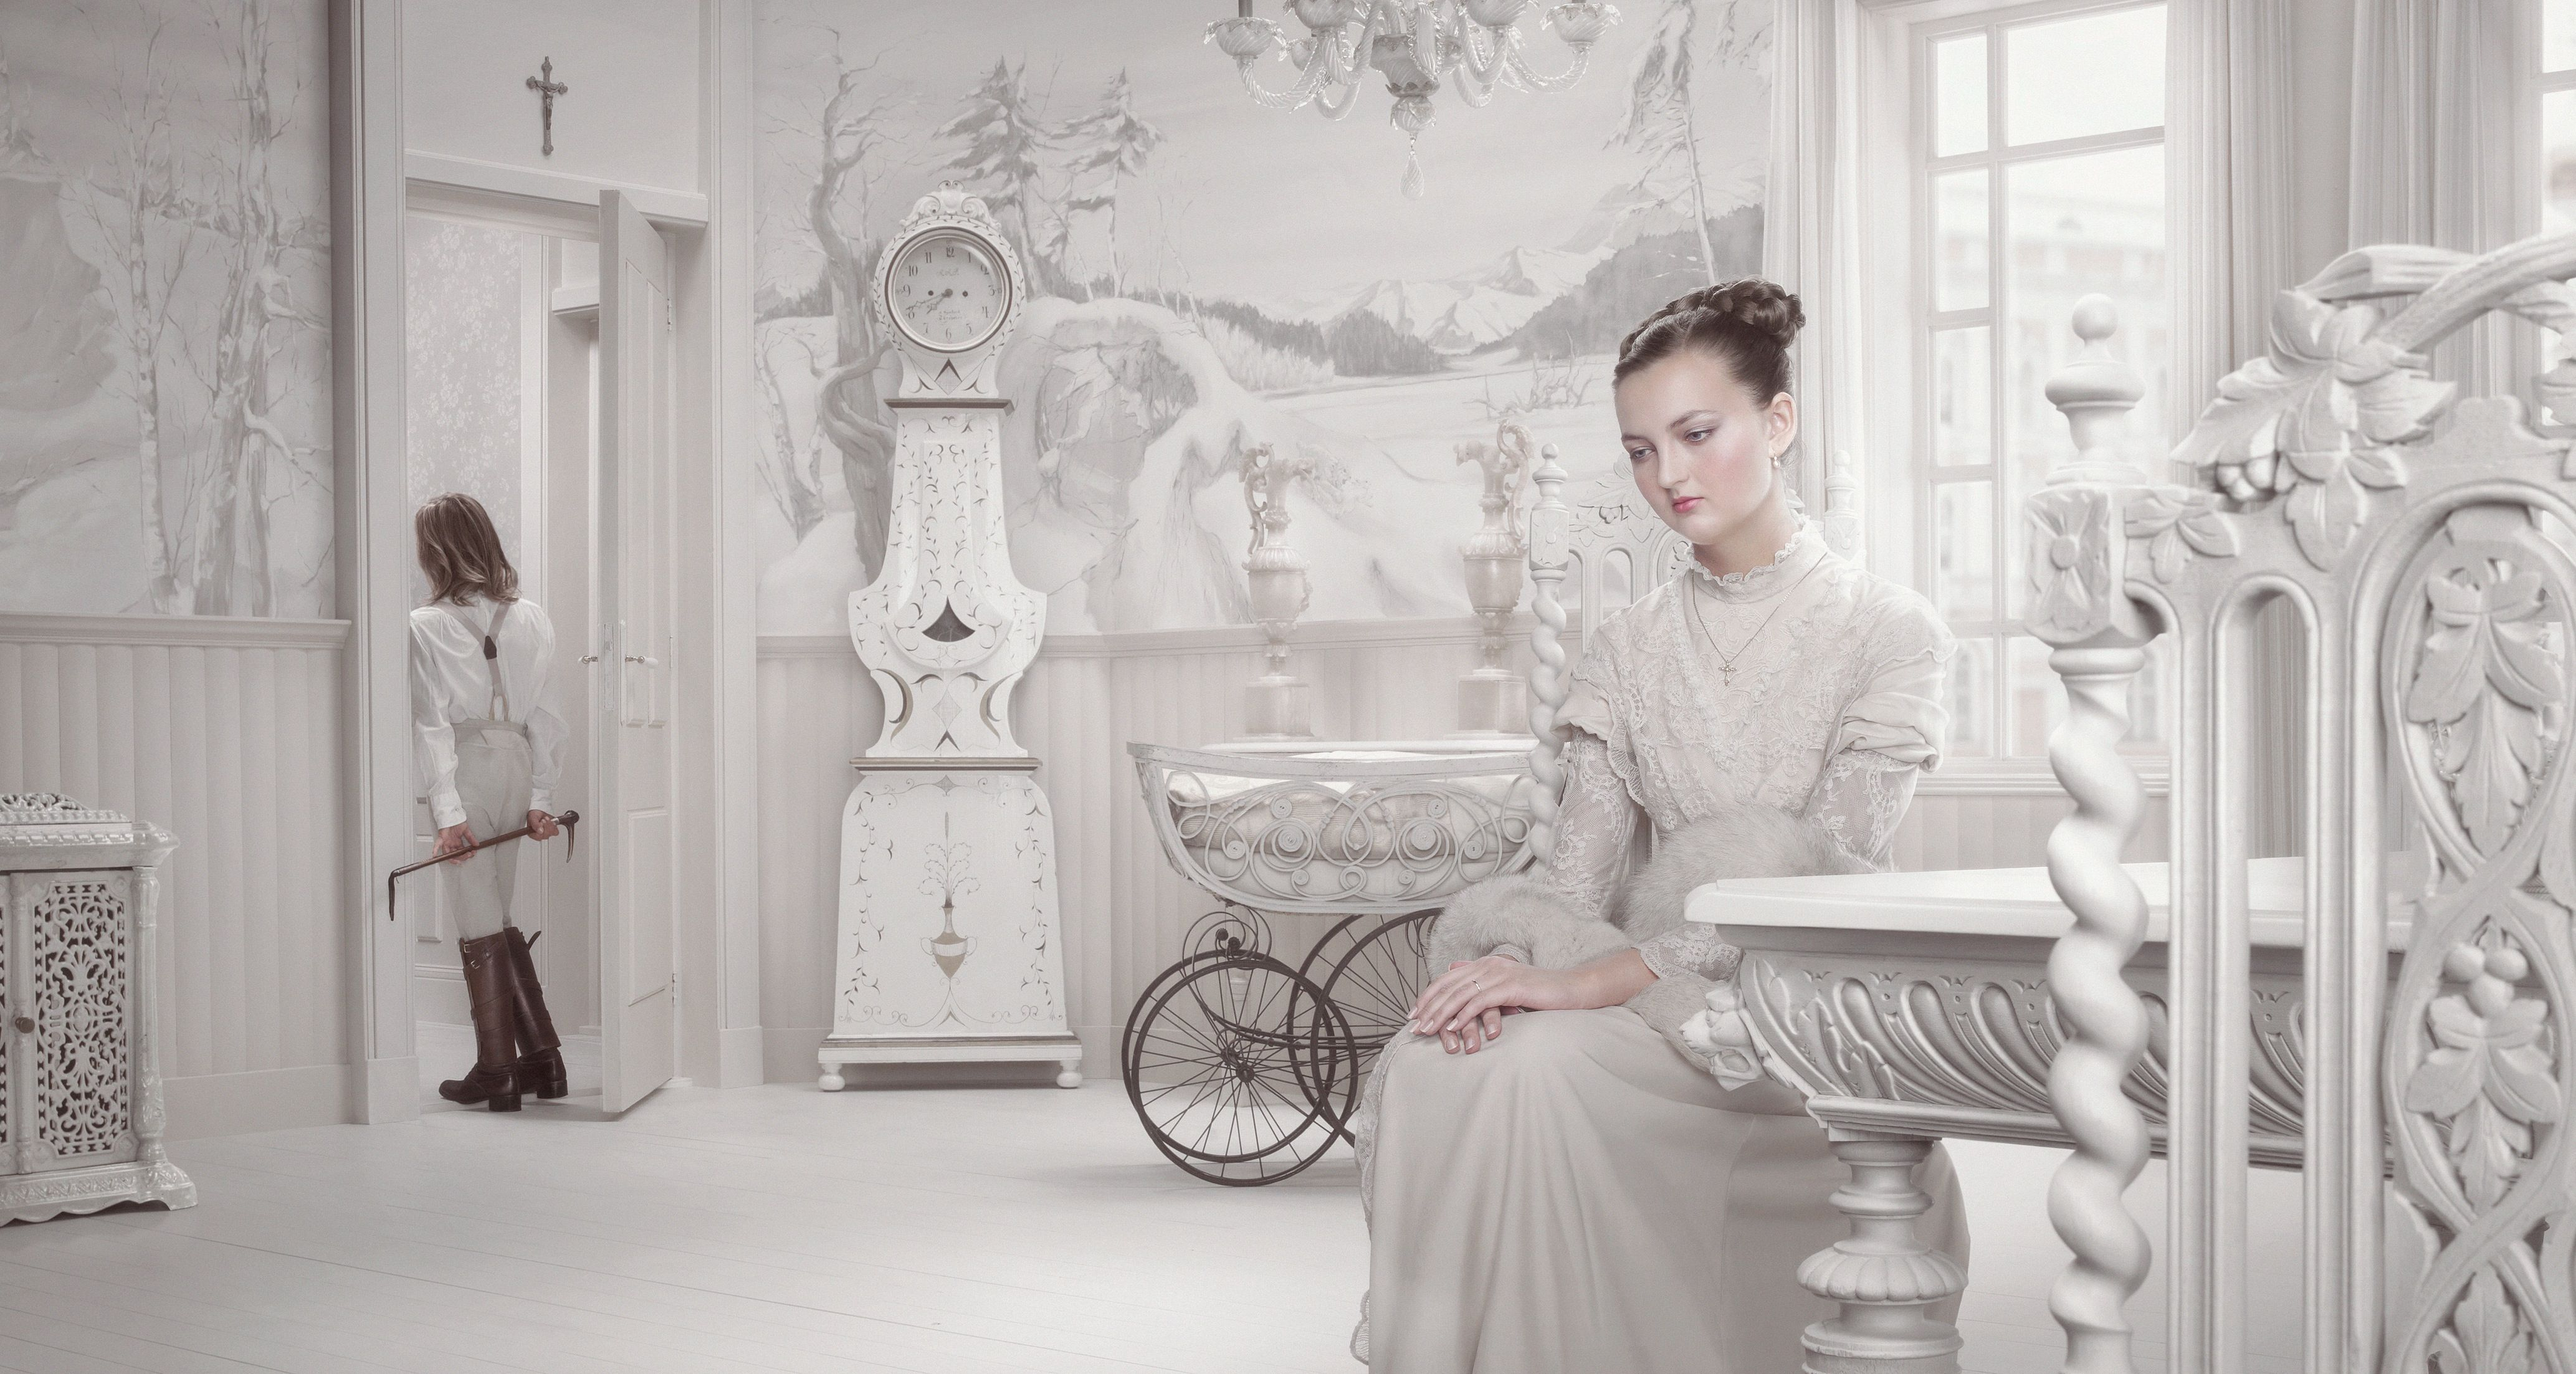 Dawn The Mother By Erwin Olaf Part Of His Dusk Dawn Series